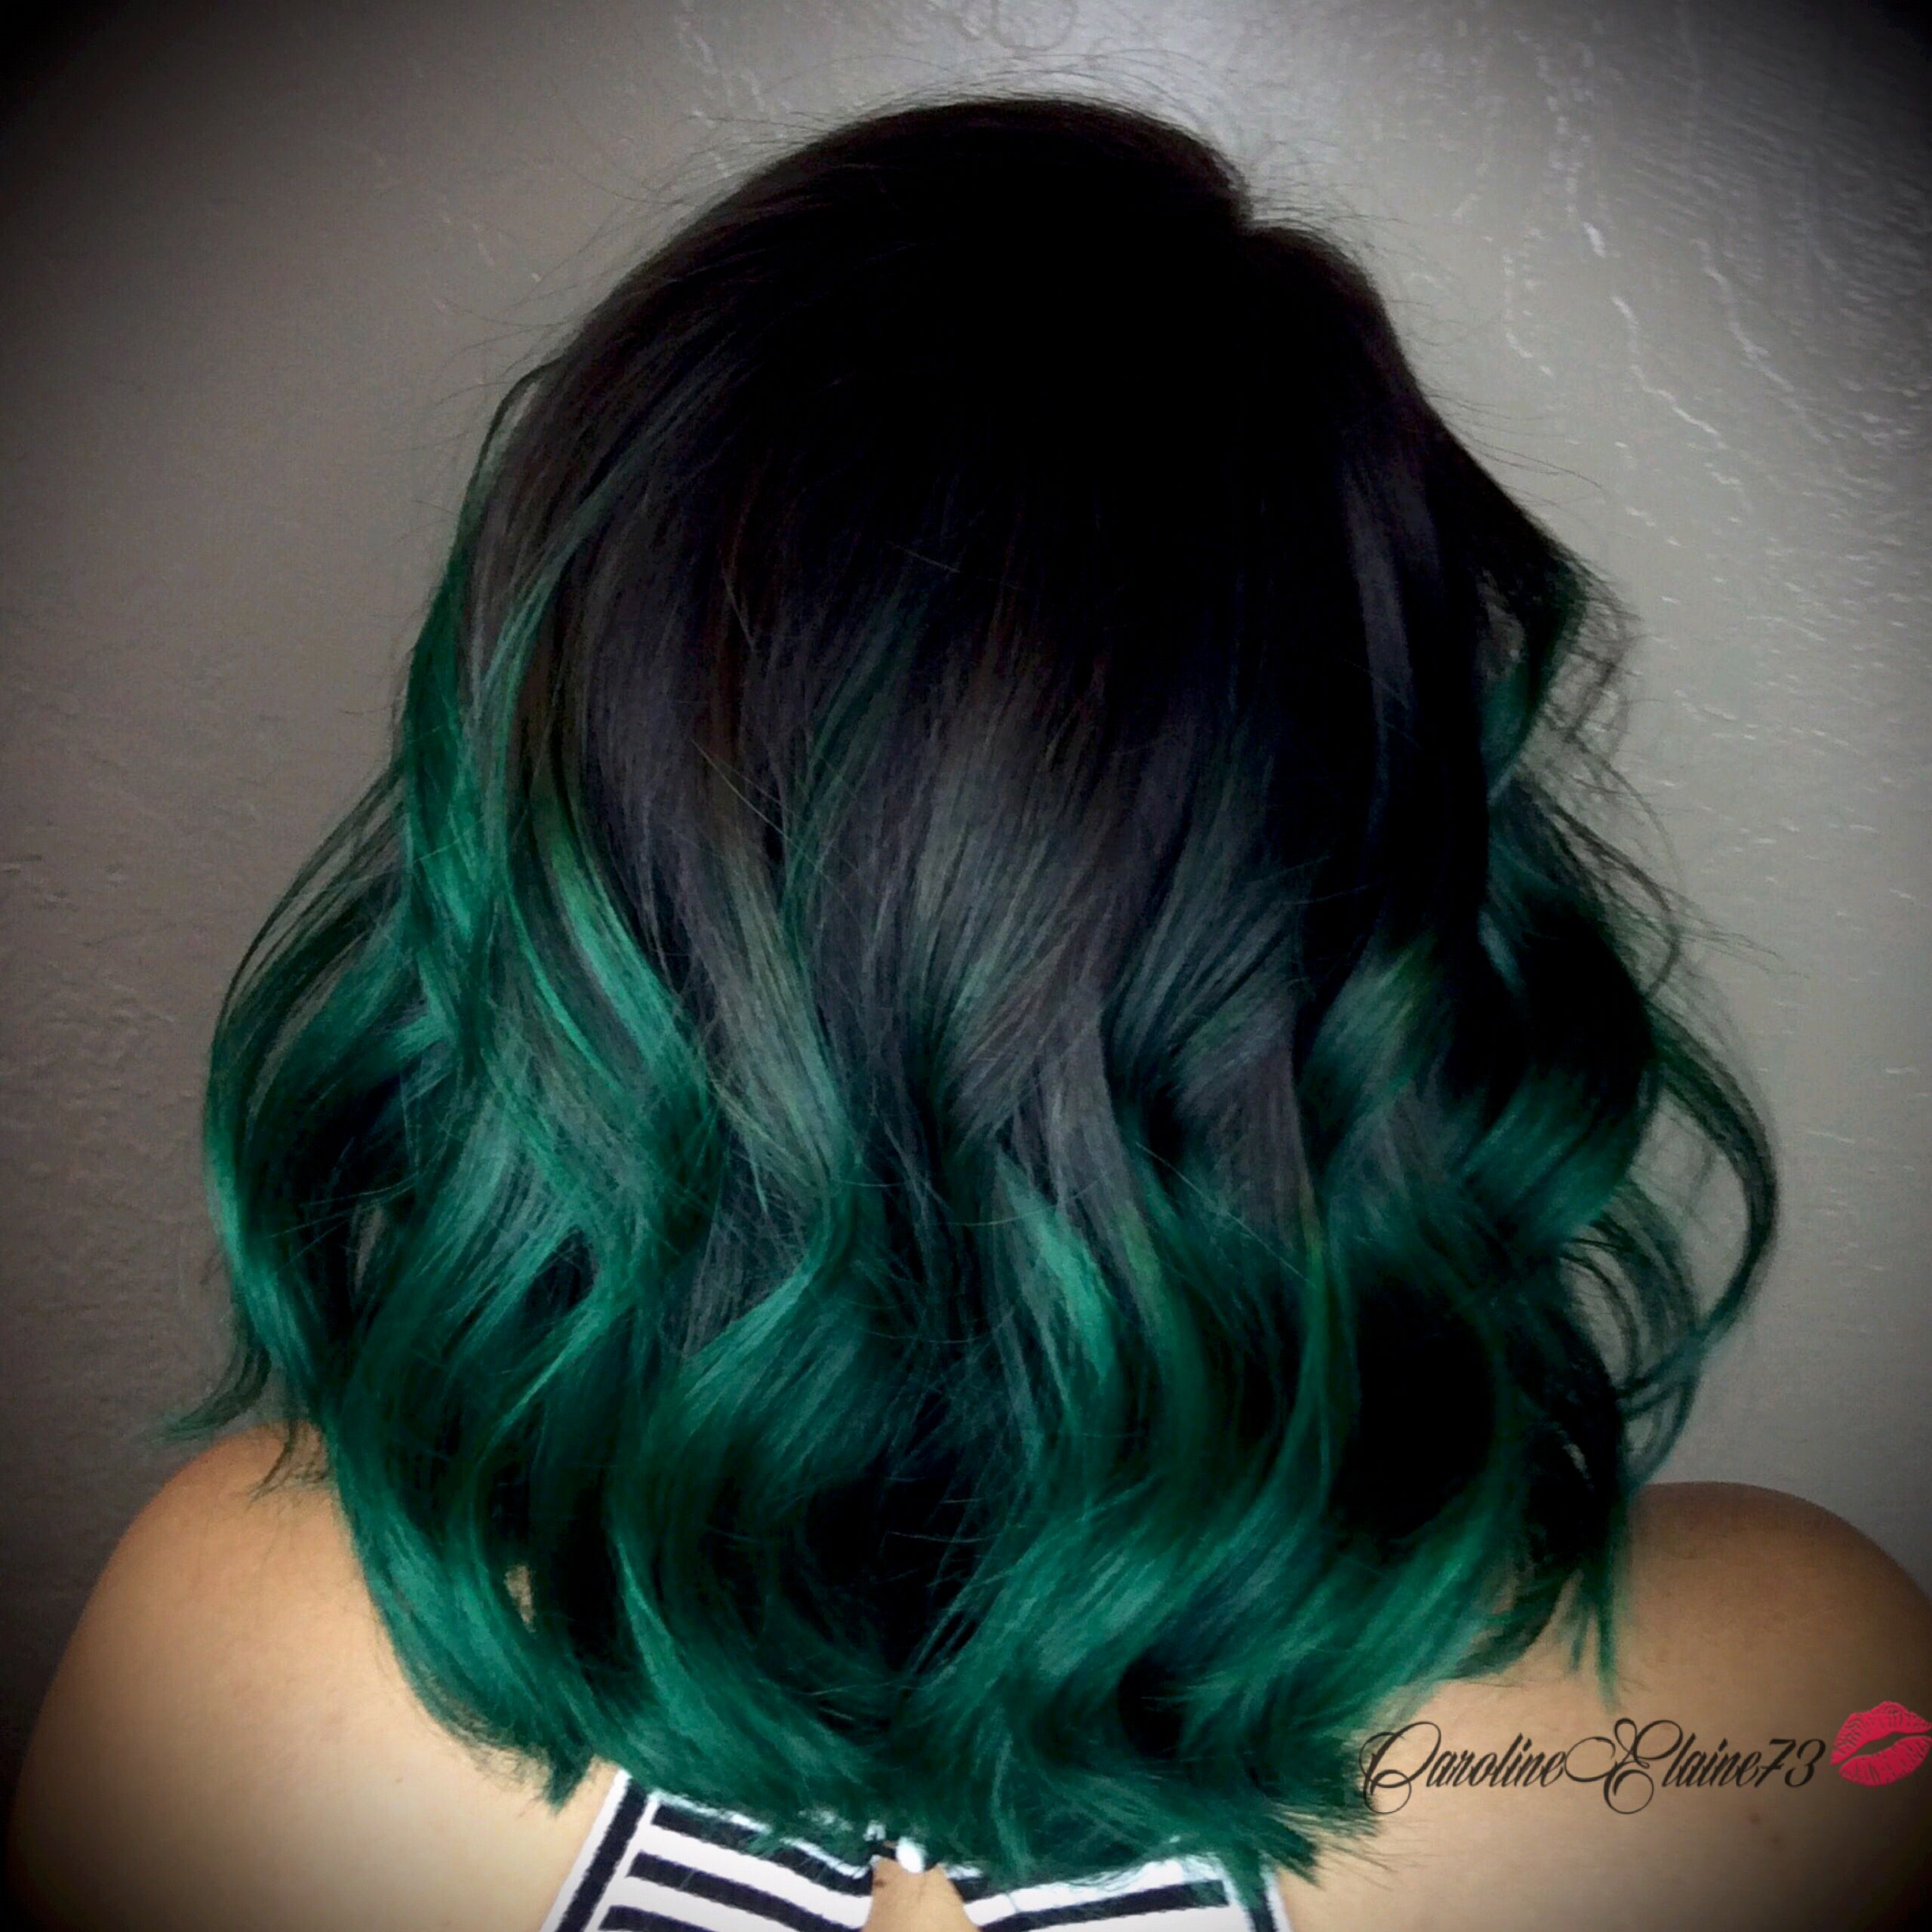 Emerald green ombré hair Hair cut Pinterest